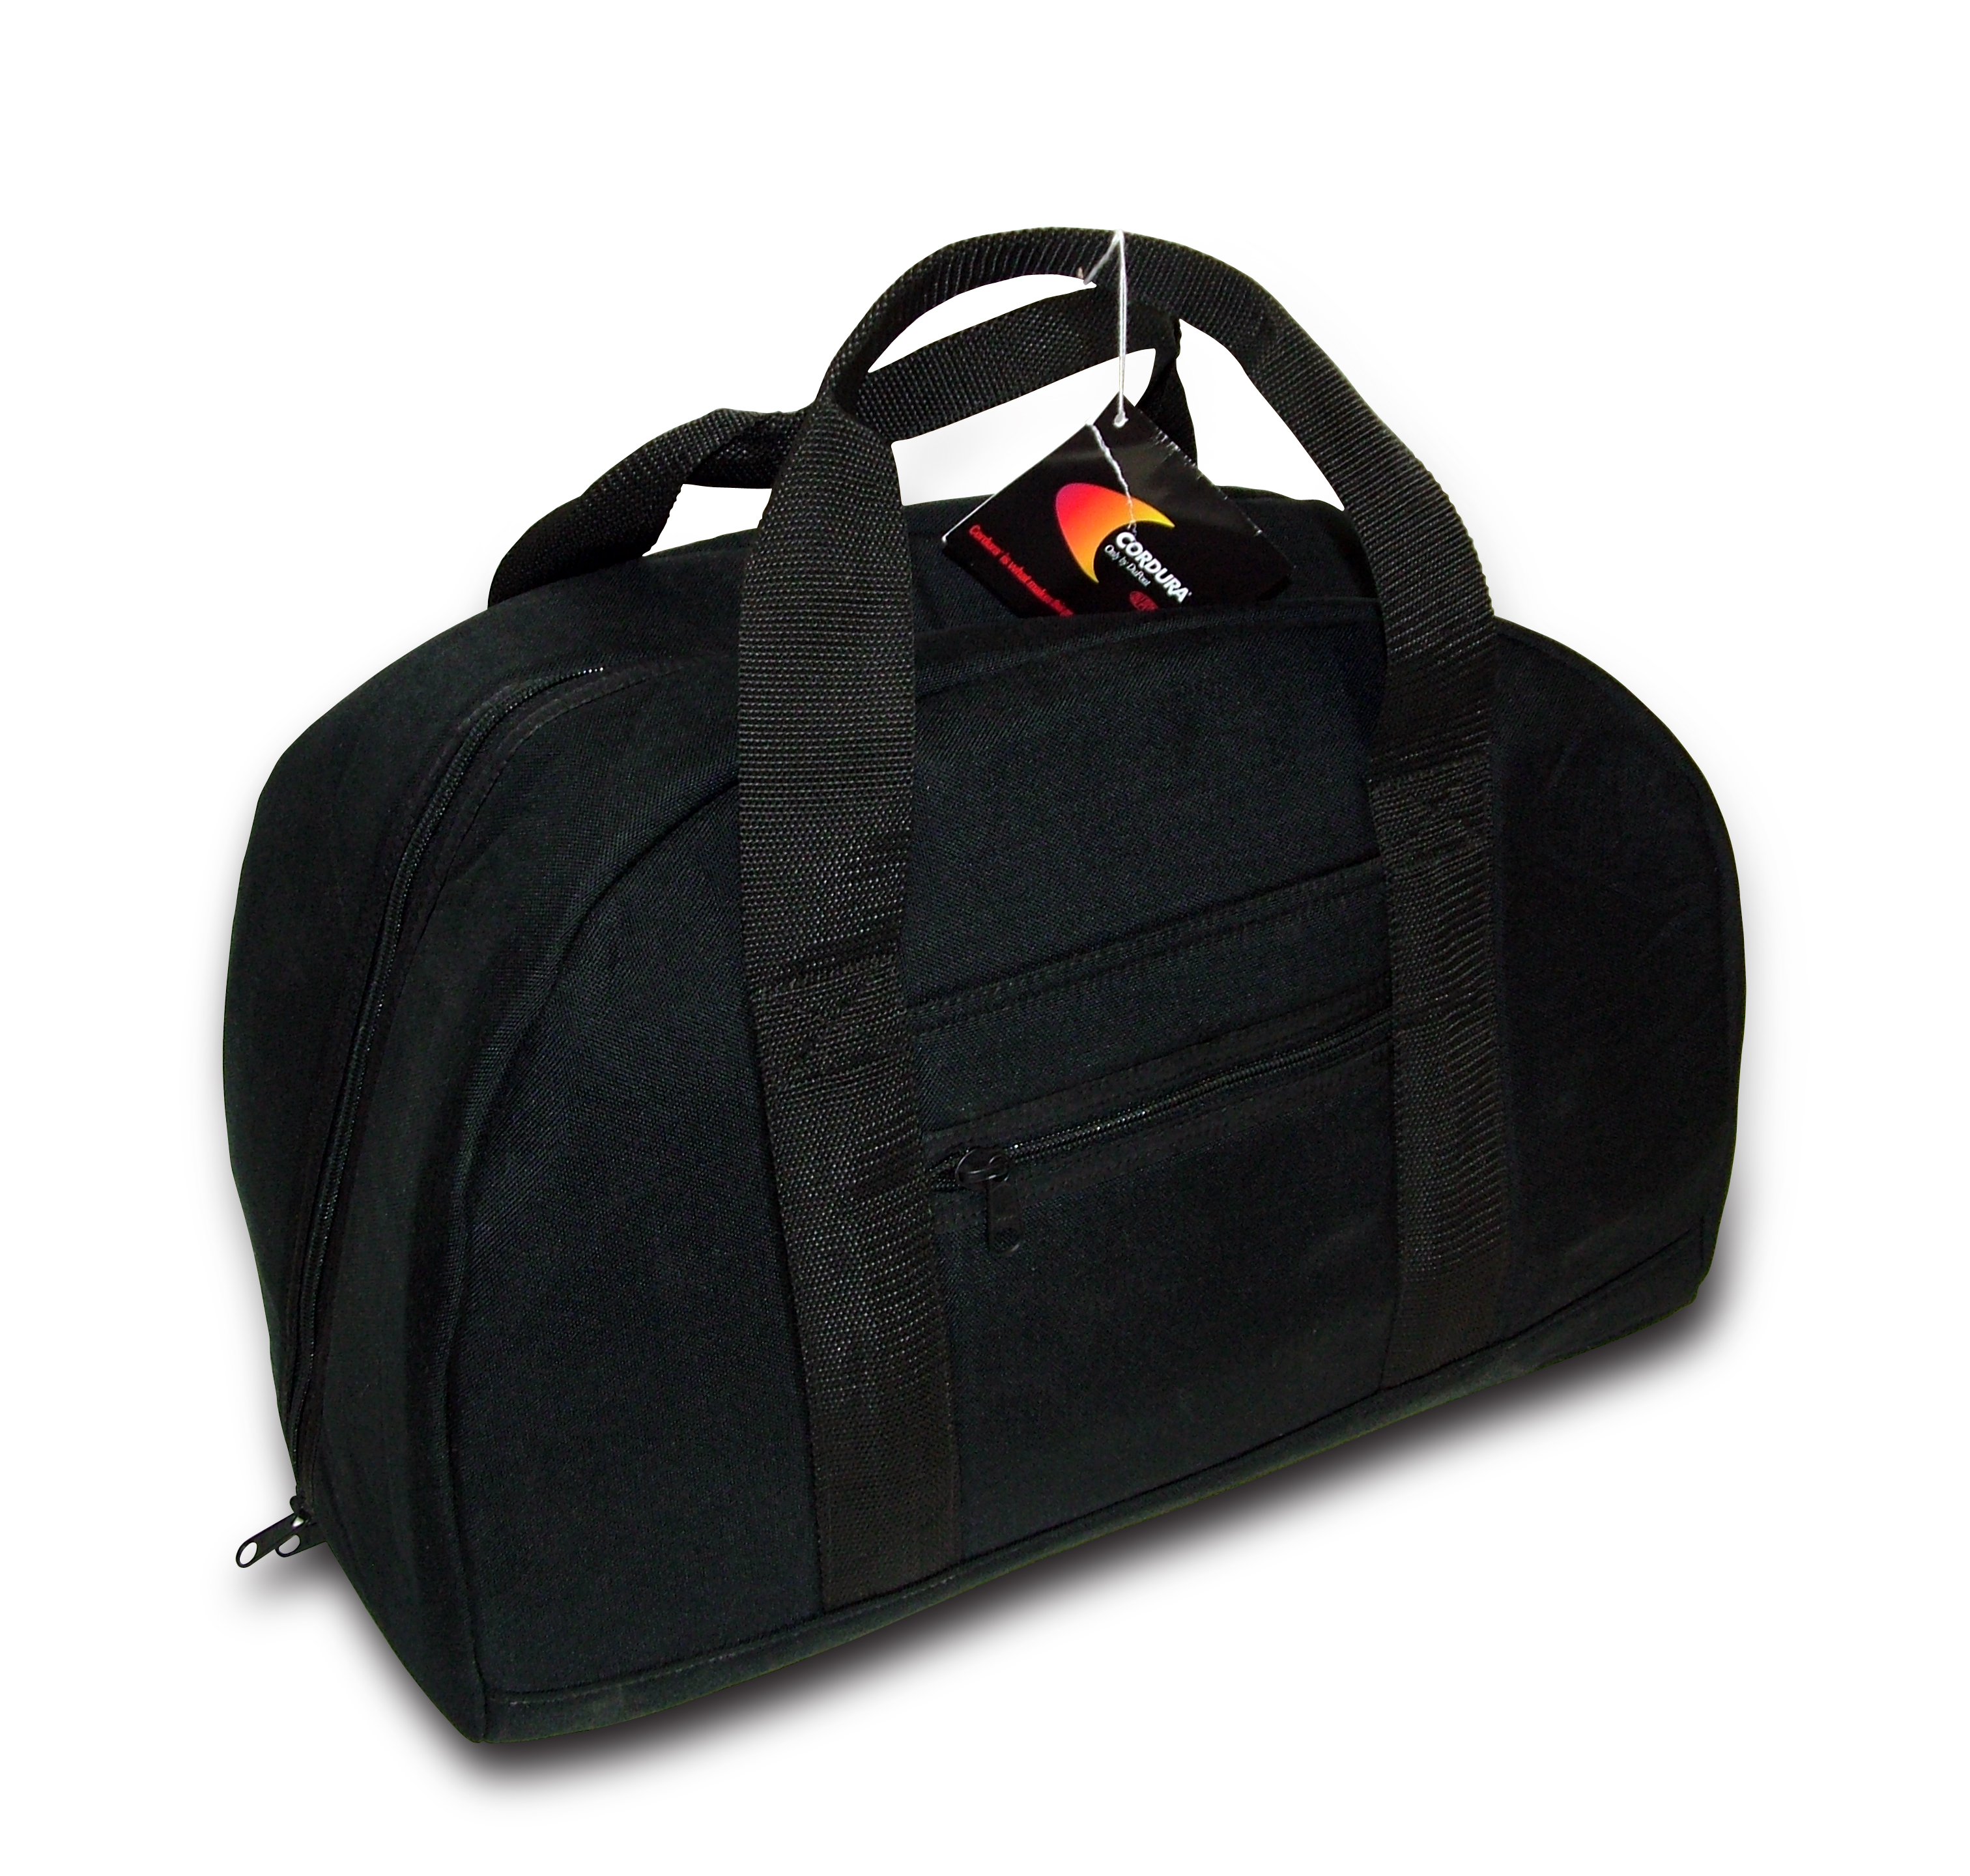 Padded Fabric Carry Bag (19A017)